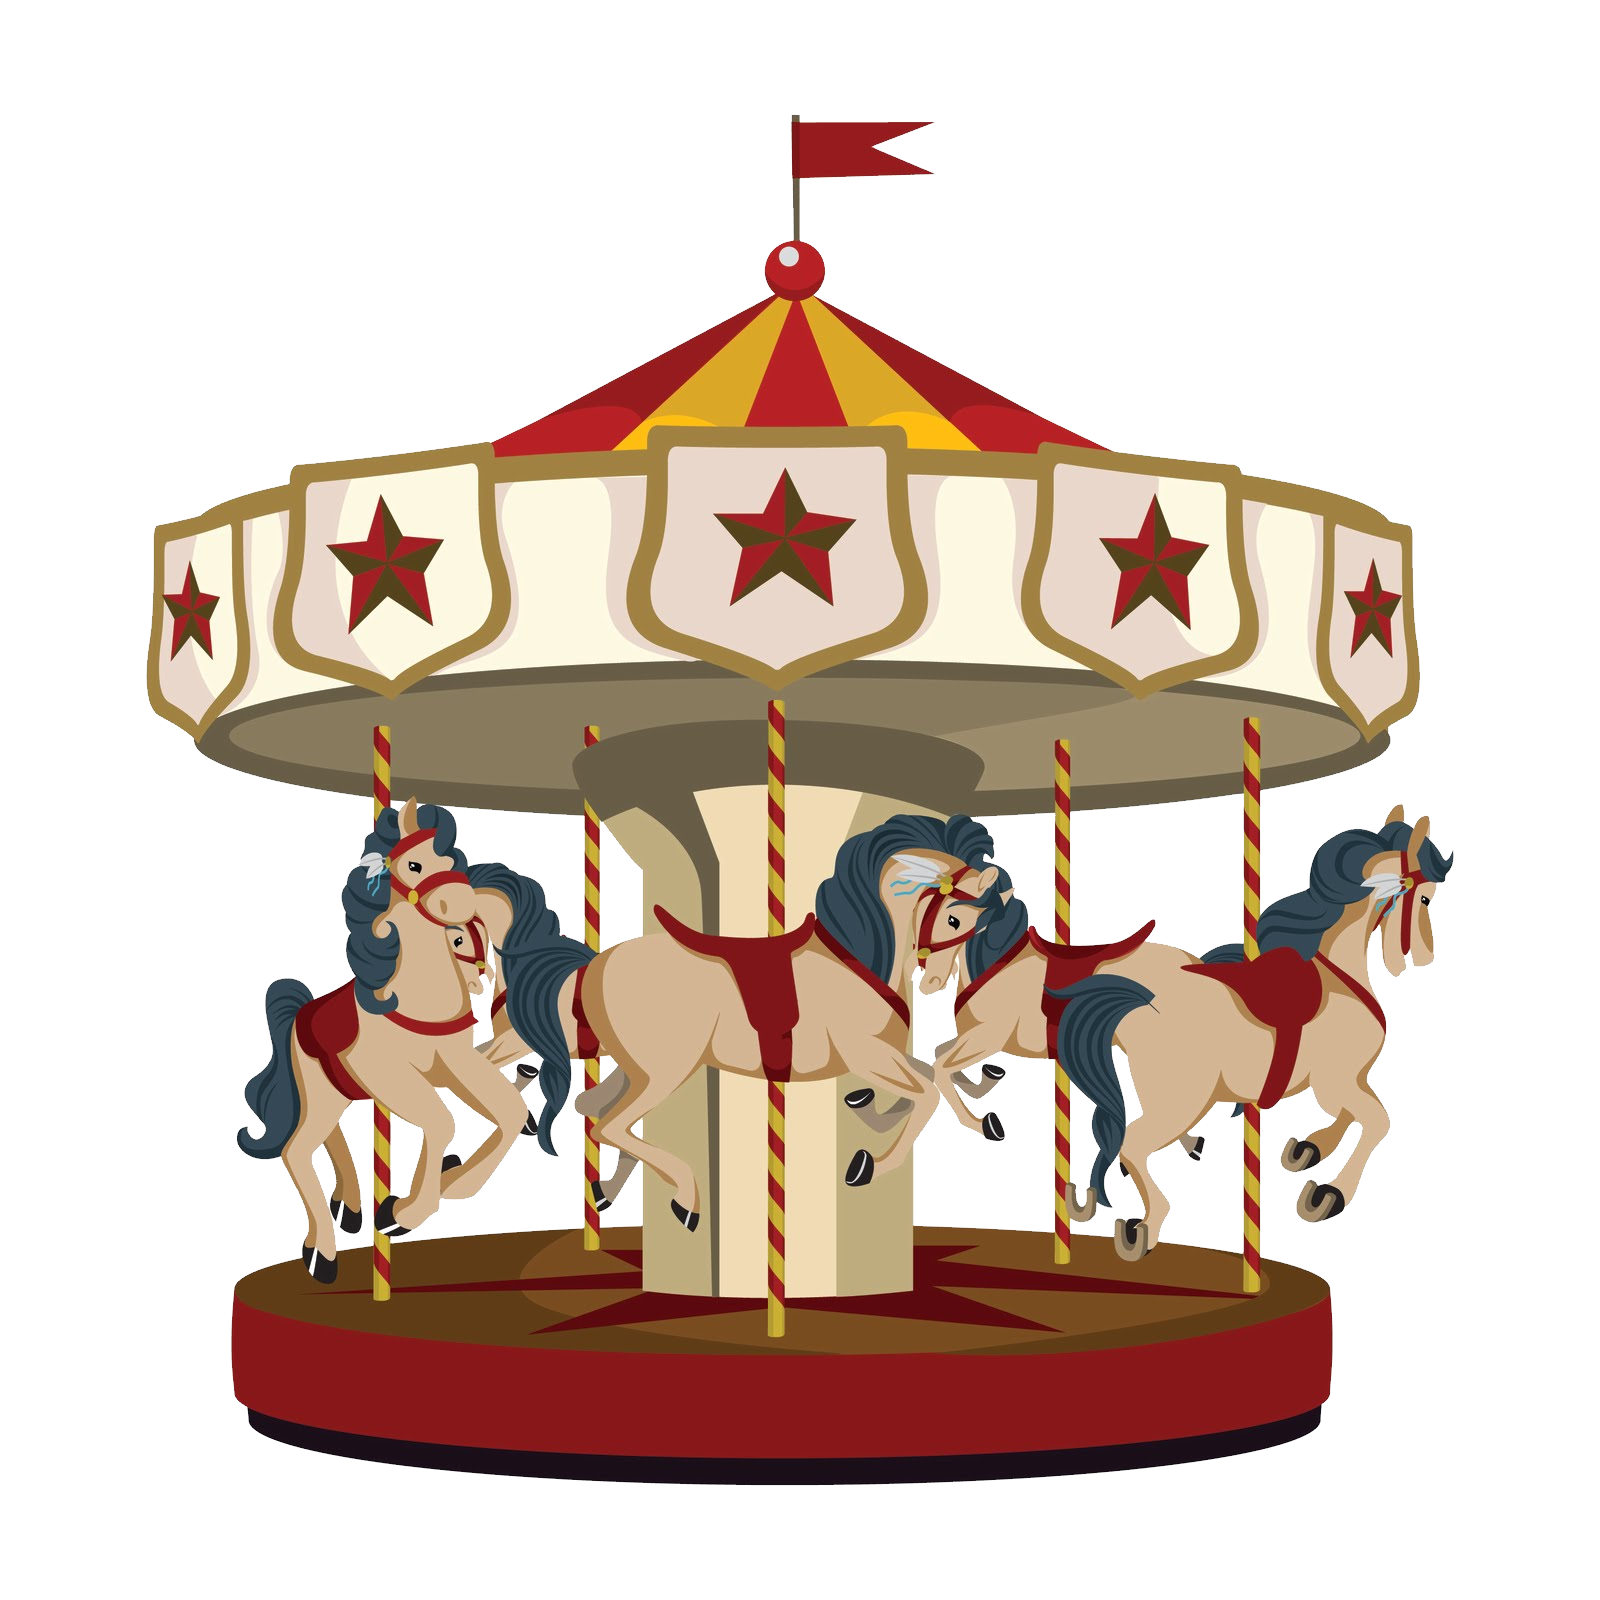 svg royalty free stock Image purepng free transparent. Carousel clipart png.